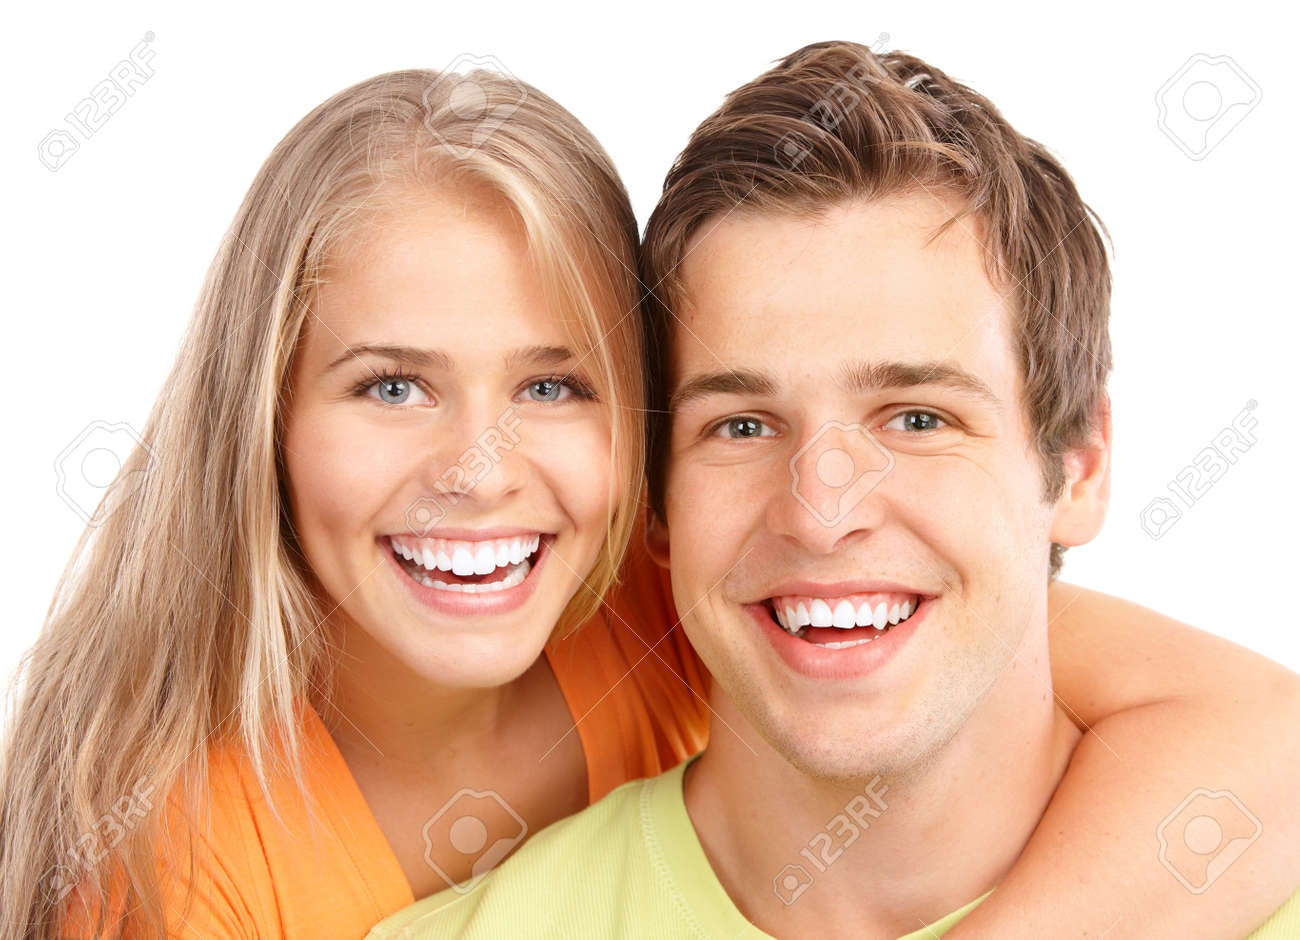 Happy smiling couple in love. Over white background - 7635100